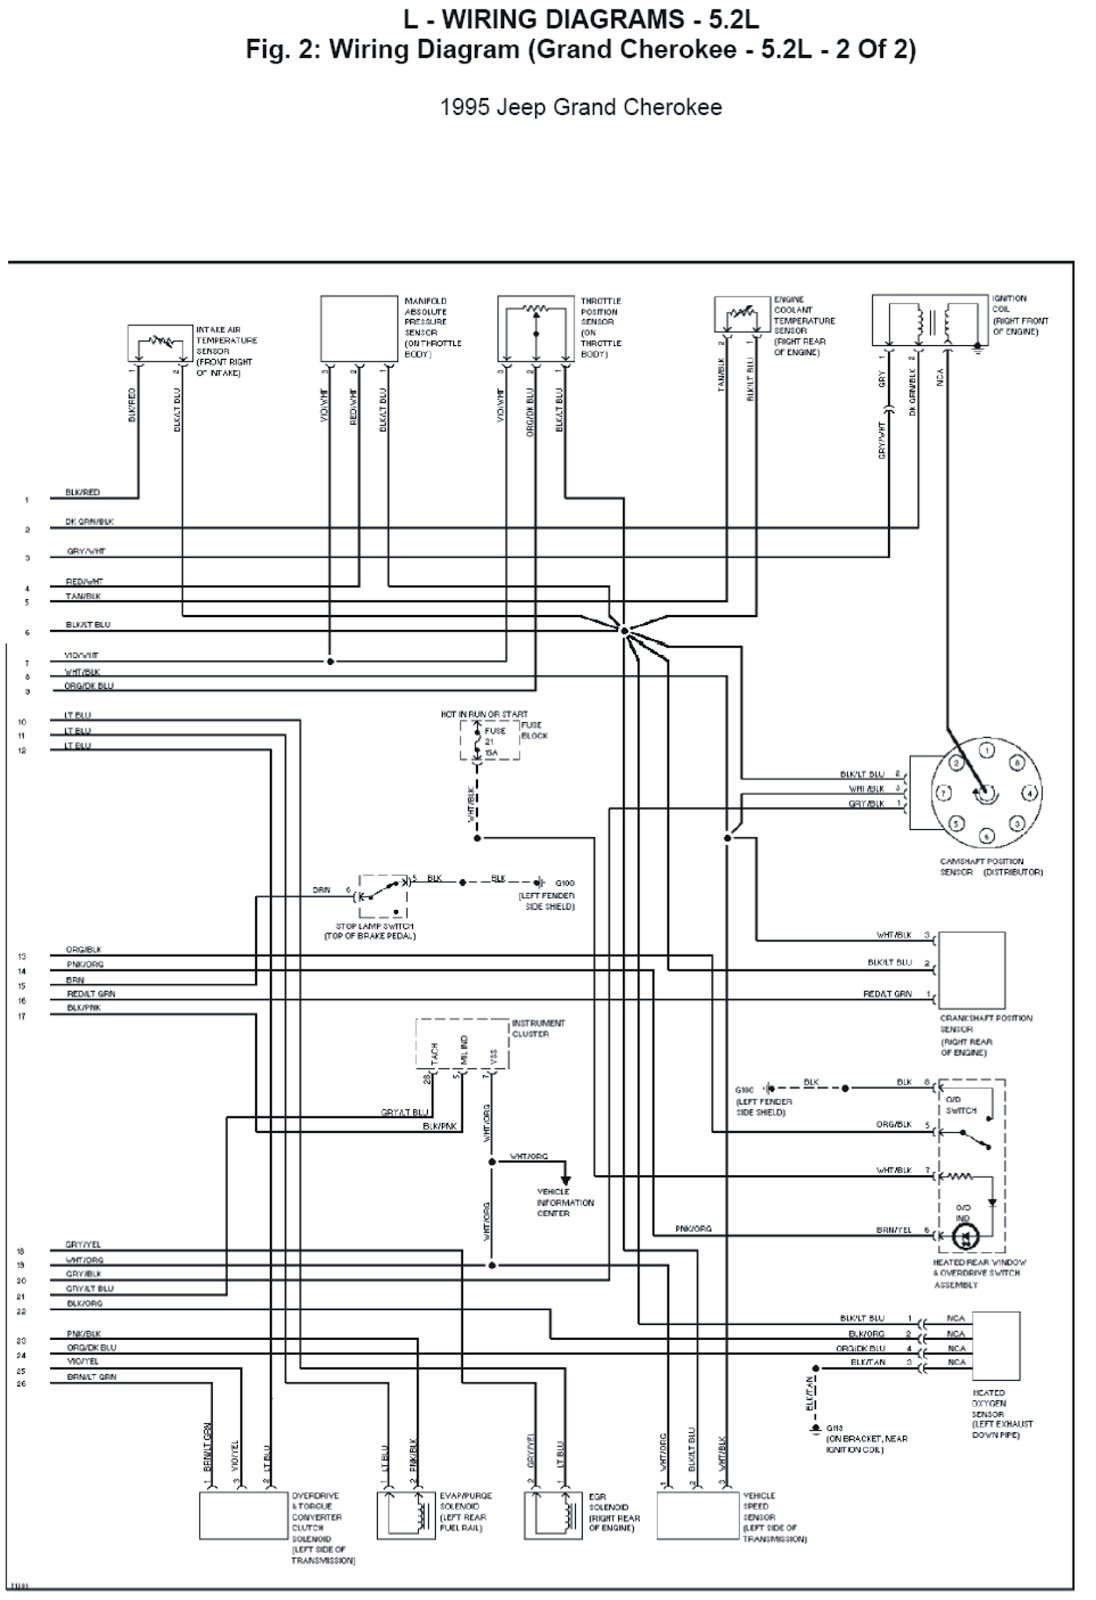 1995 cherokee wiring diagram 1995 jeep schematics and wiring diagrams jeep wrangler 93  [ 1096 x 1600 Pixel ]